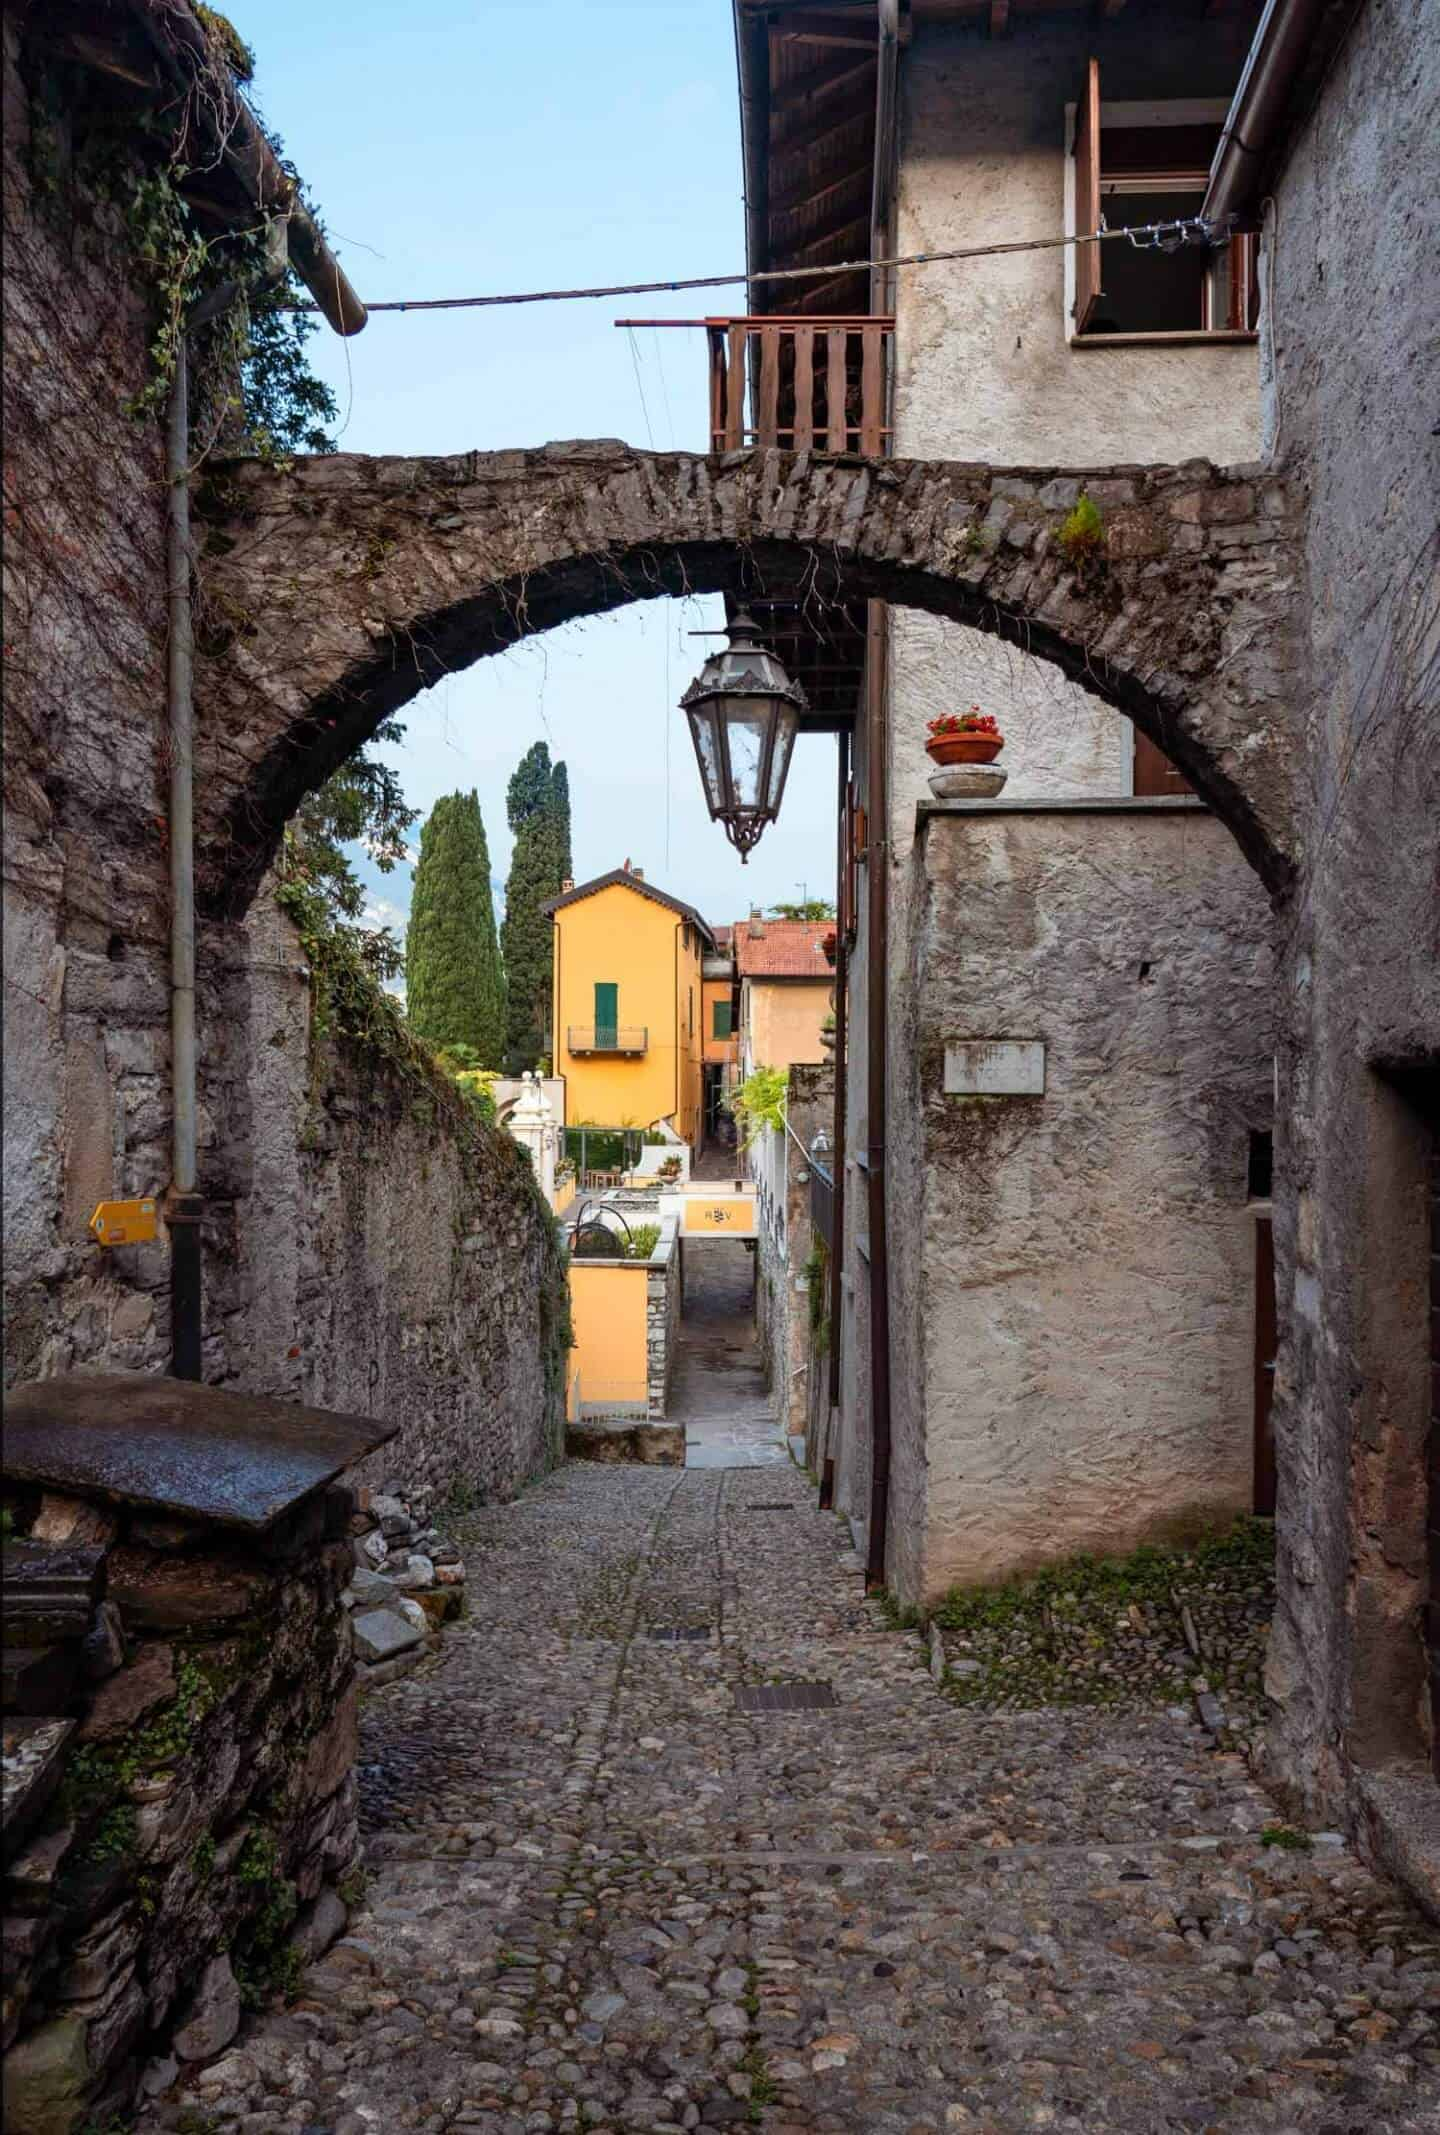 A narrow, pretty alleyway with an arch and lantern over it in Varenna, Lake Como from Milan